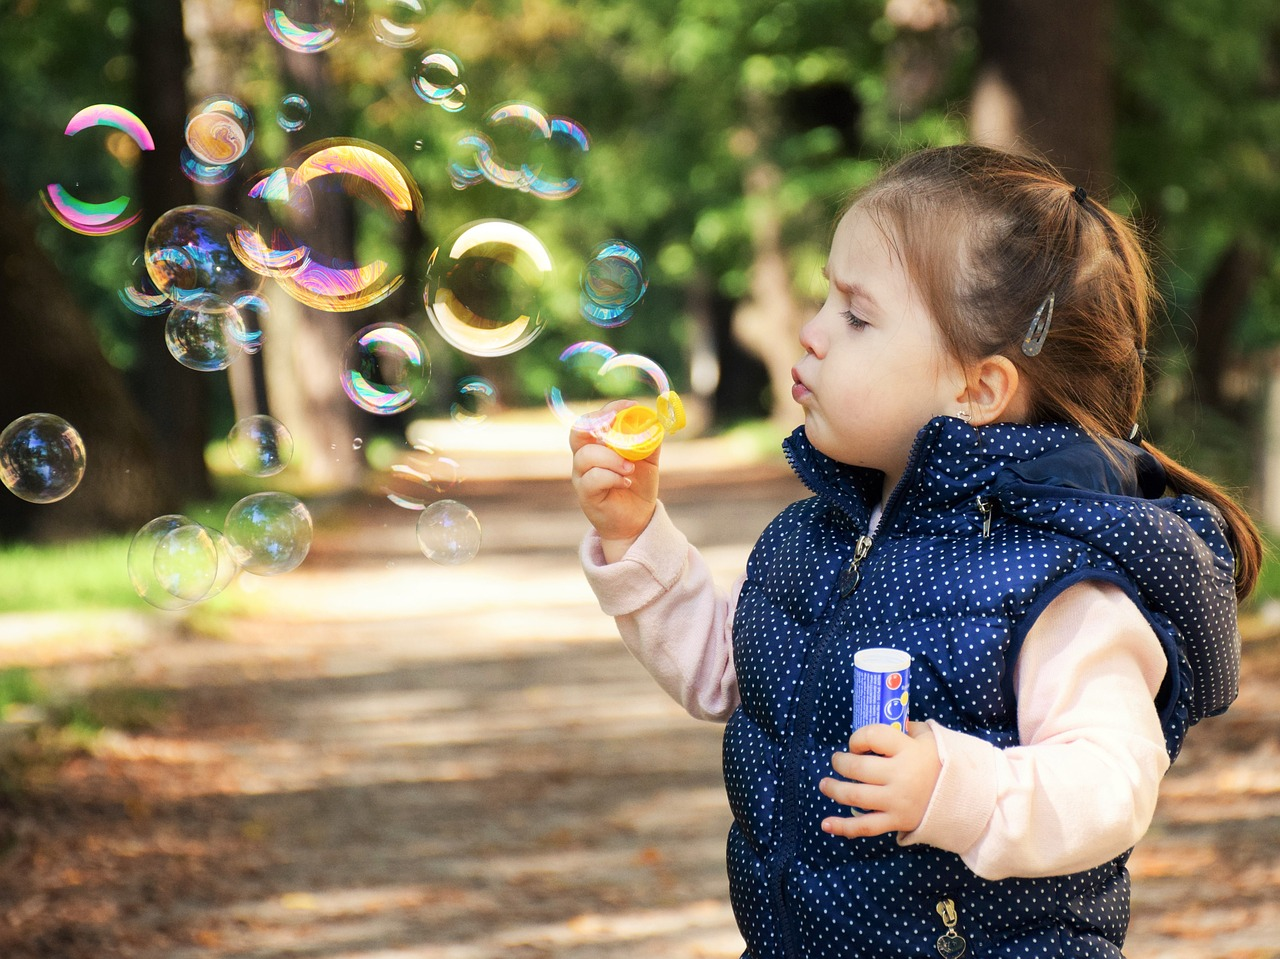 Little girl blowing bubble